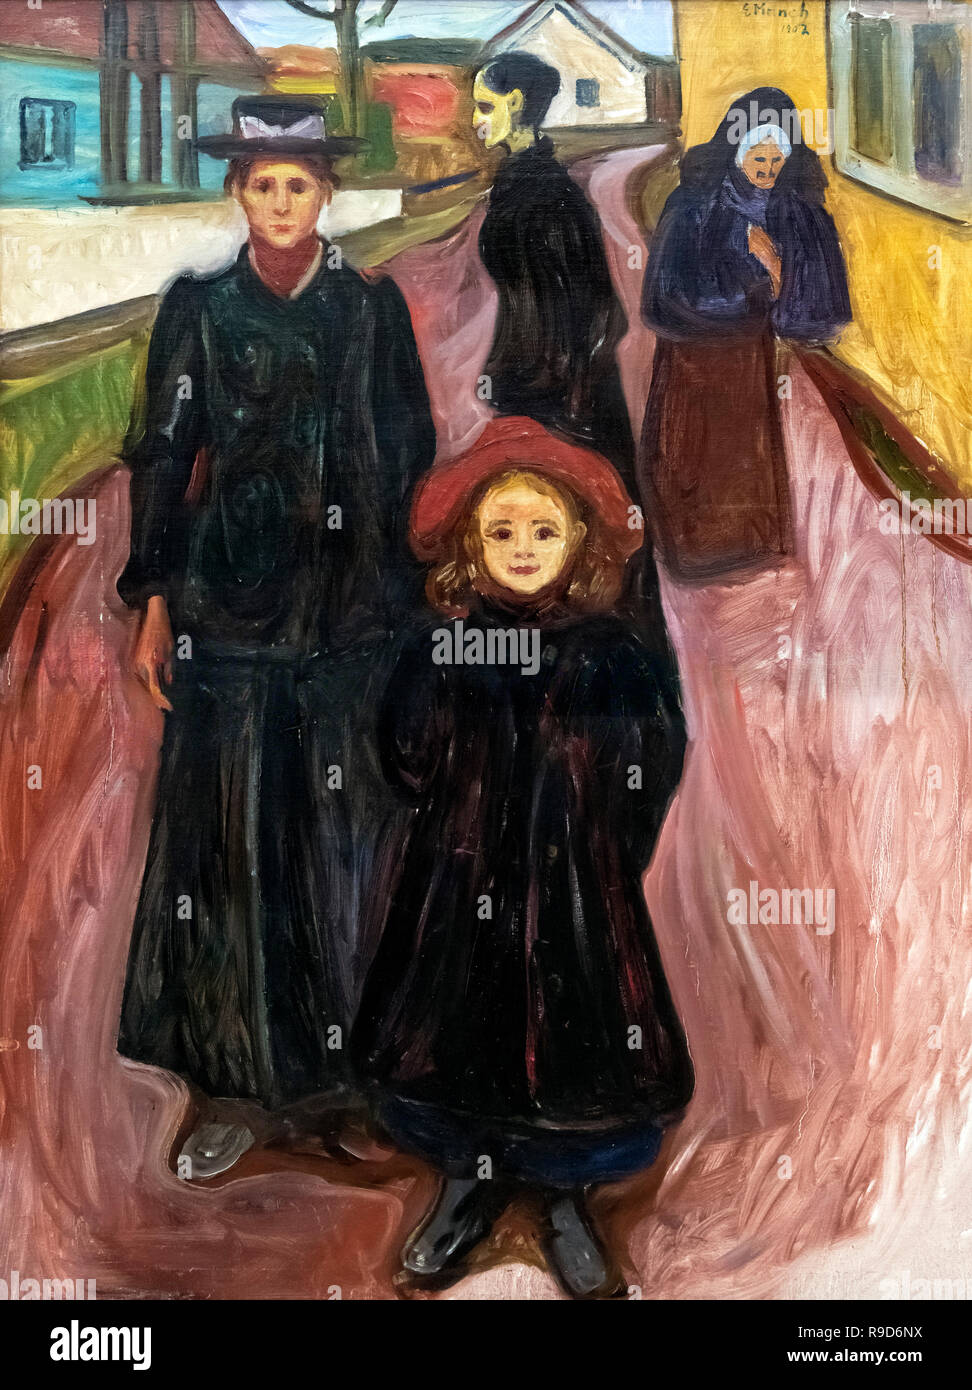 Four Stages of Life by Edvard Munch (1863-1944), oil on canvas, 1902 - Stock Image